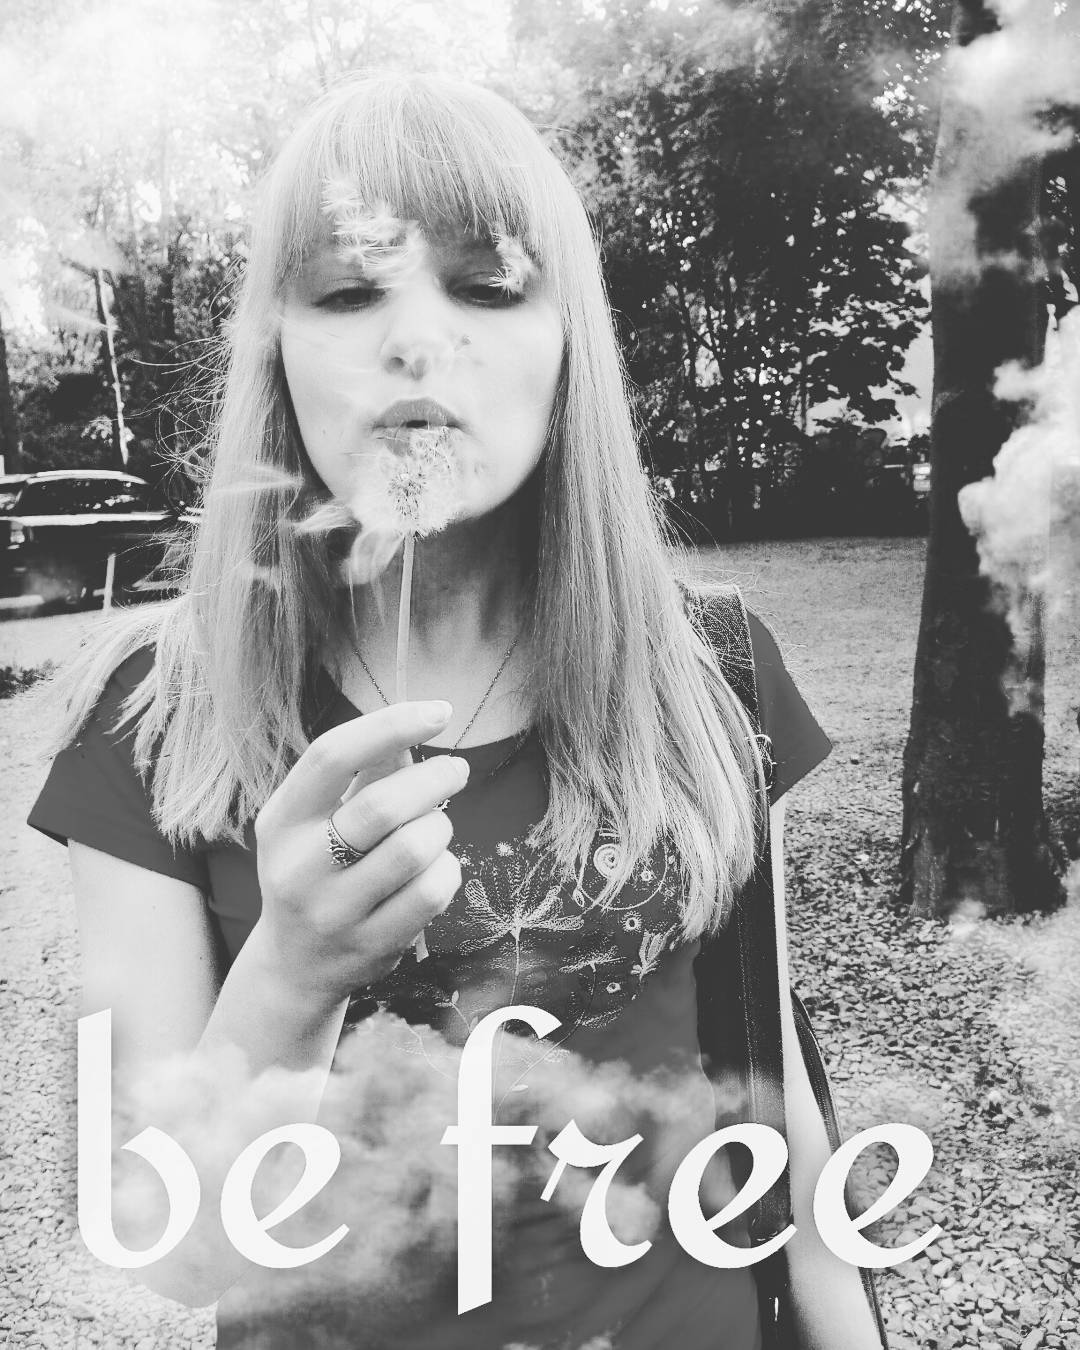 be free, black and white, blonde, bw, free